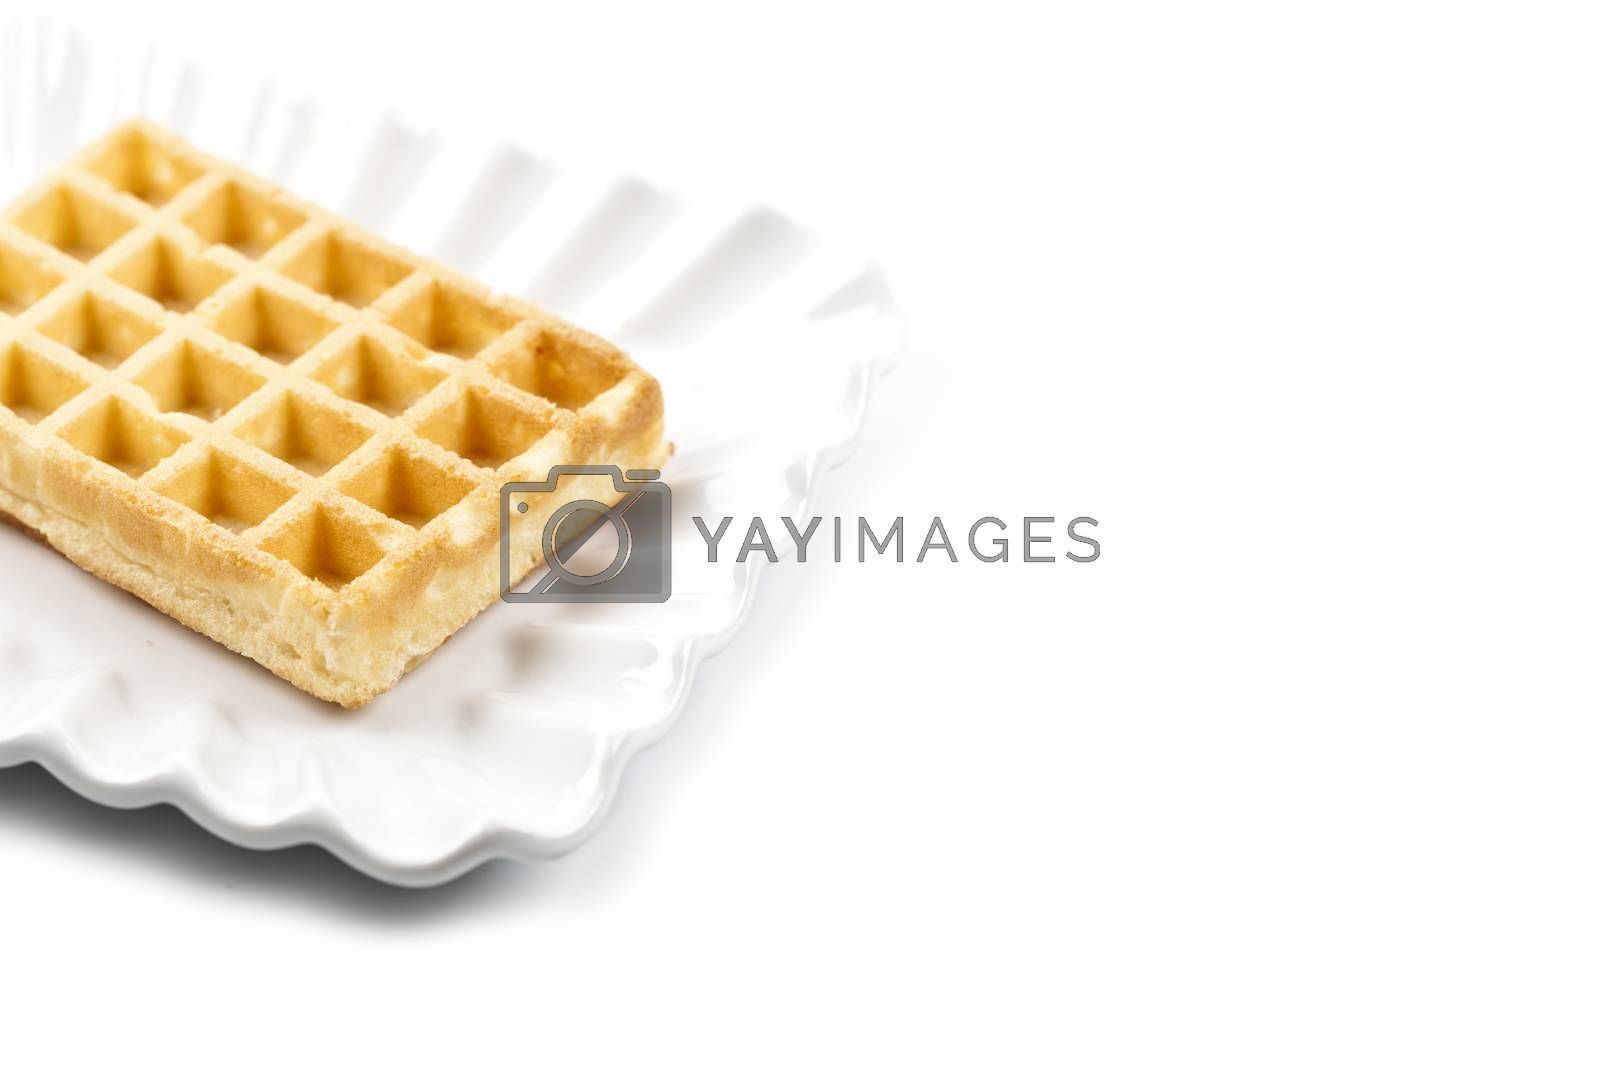 Belgium waffer on white ceramic plate isolated on white background. Fresh baked wafer with copy space.